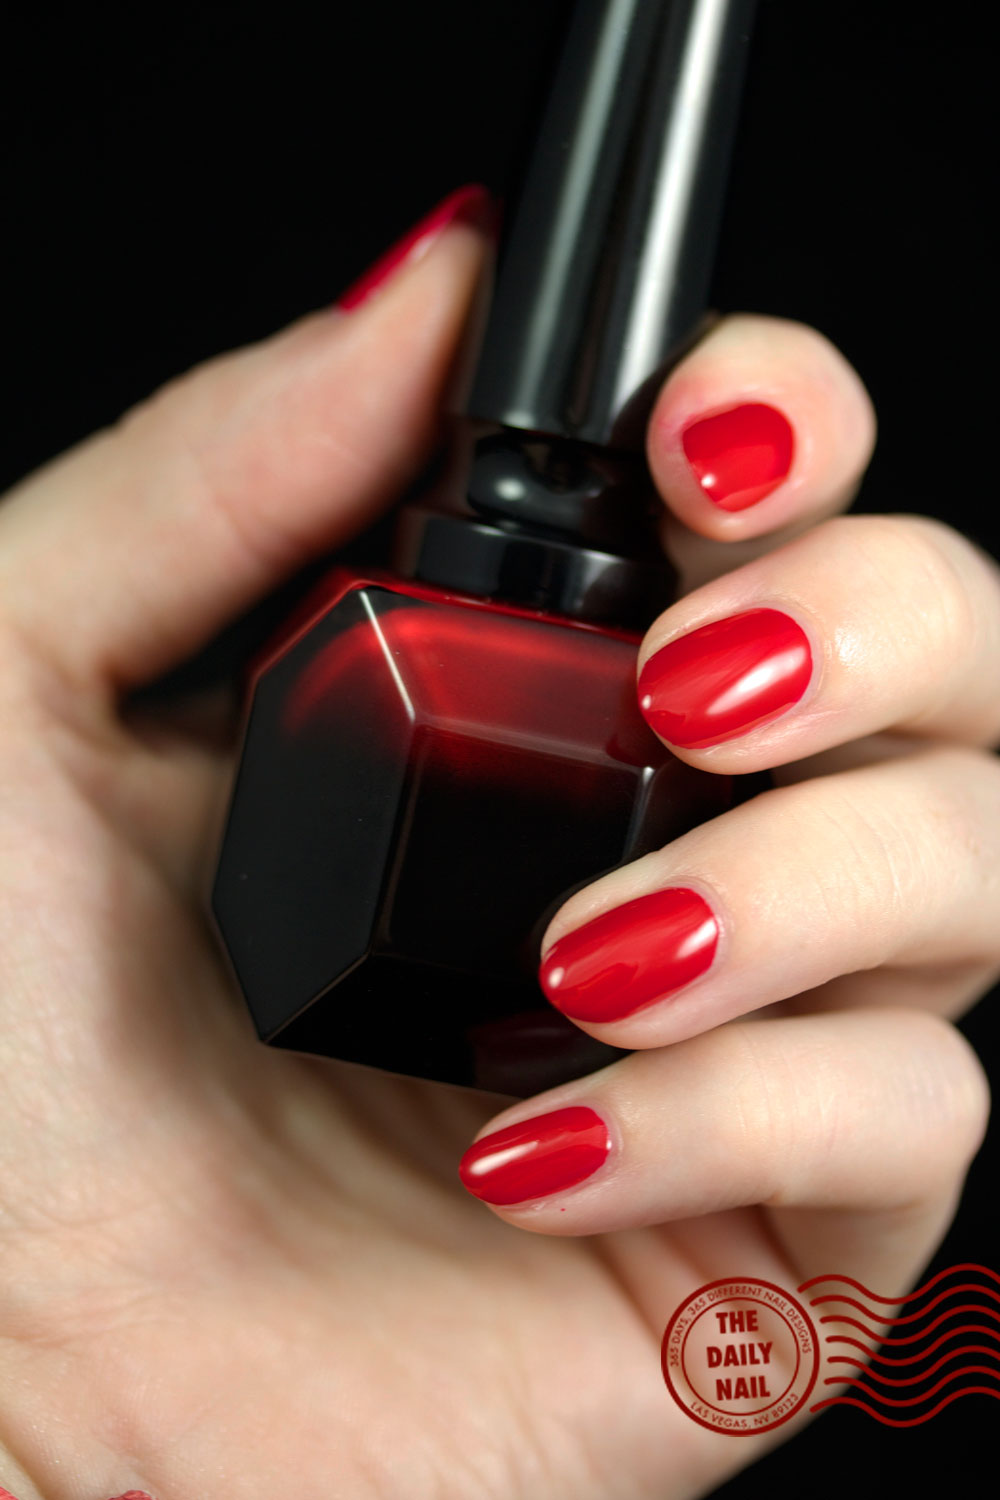 August 2014 - The Daily Nail